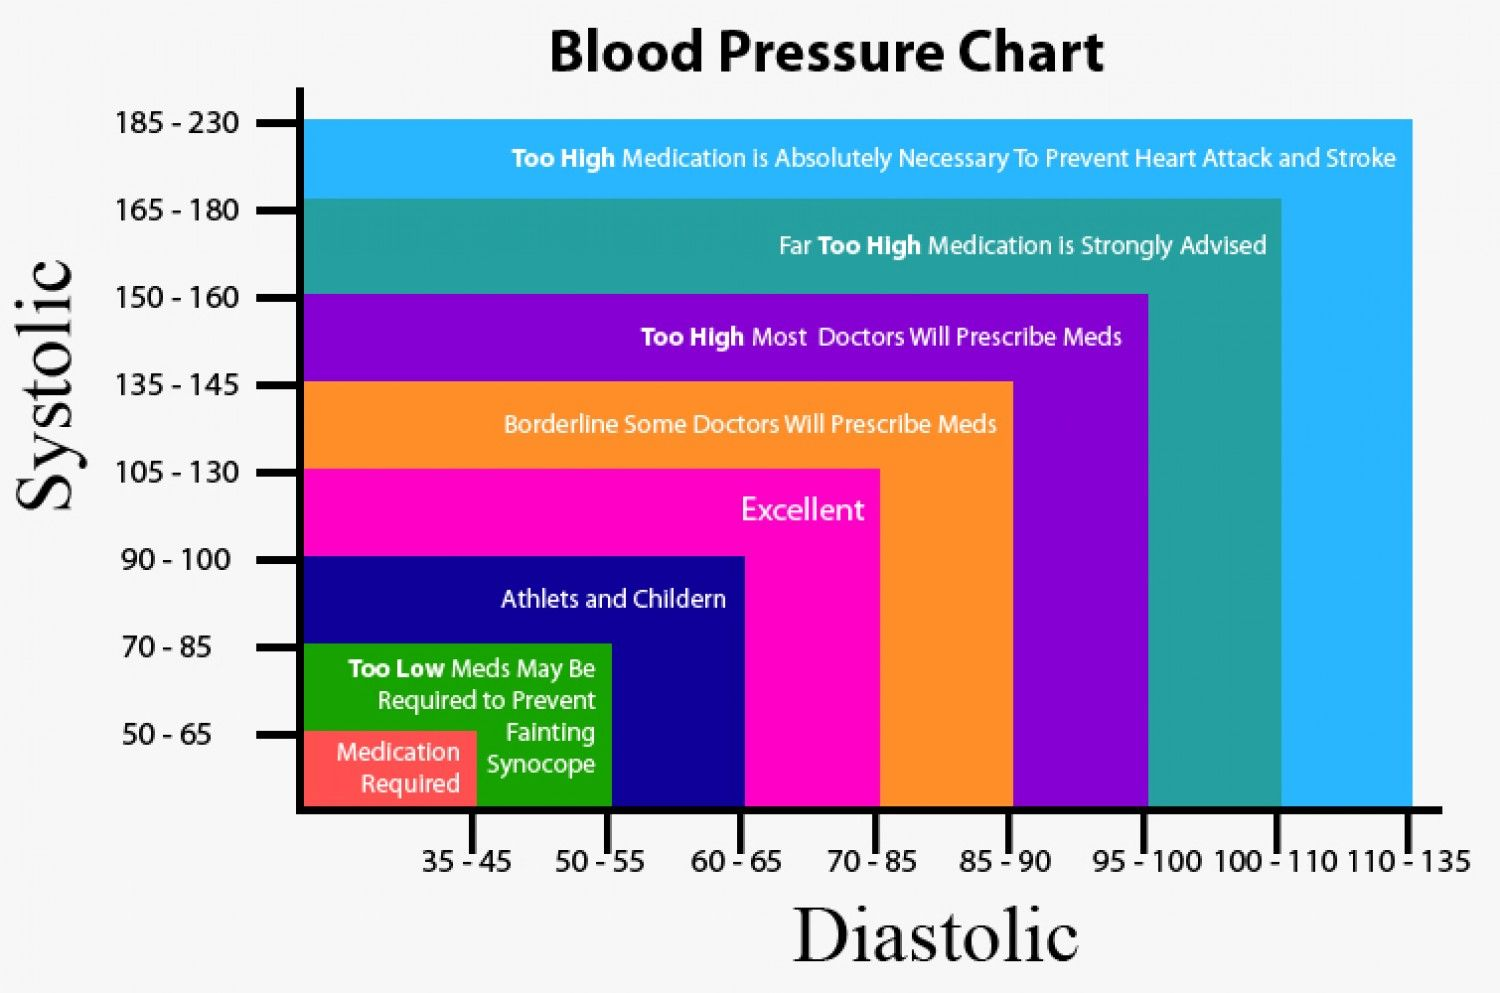 Blood pressure chart american heart association physed blood pressure chart american heart association nvjuhfo Gallery